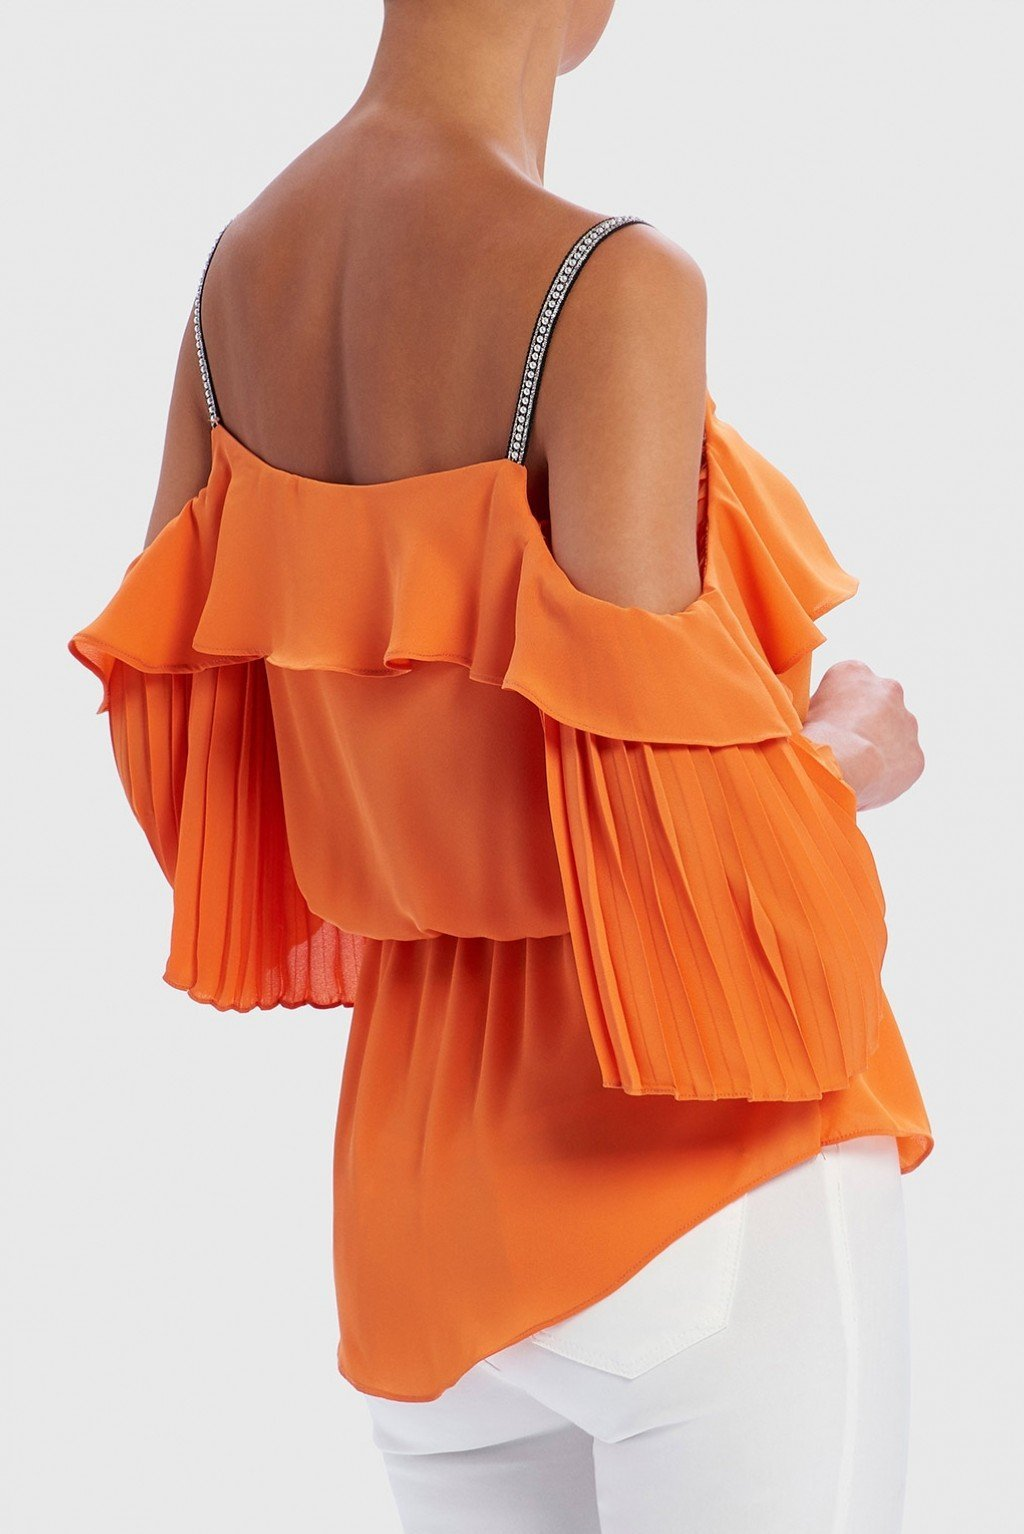 Forever Unique Women/'s Sirius Cold-Shoulder Pearl Embellished Ruffle Top